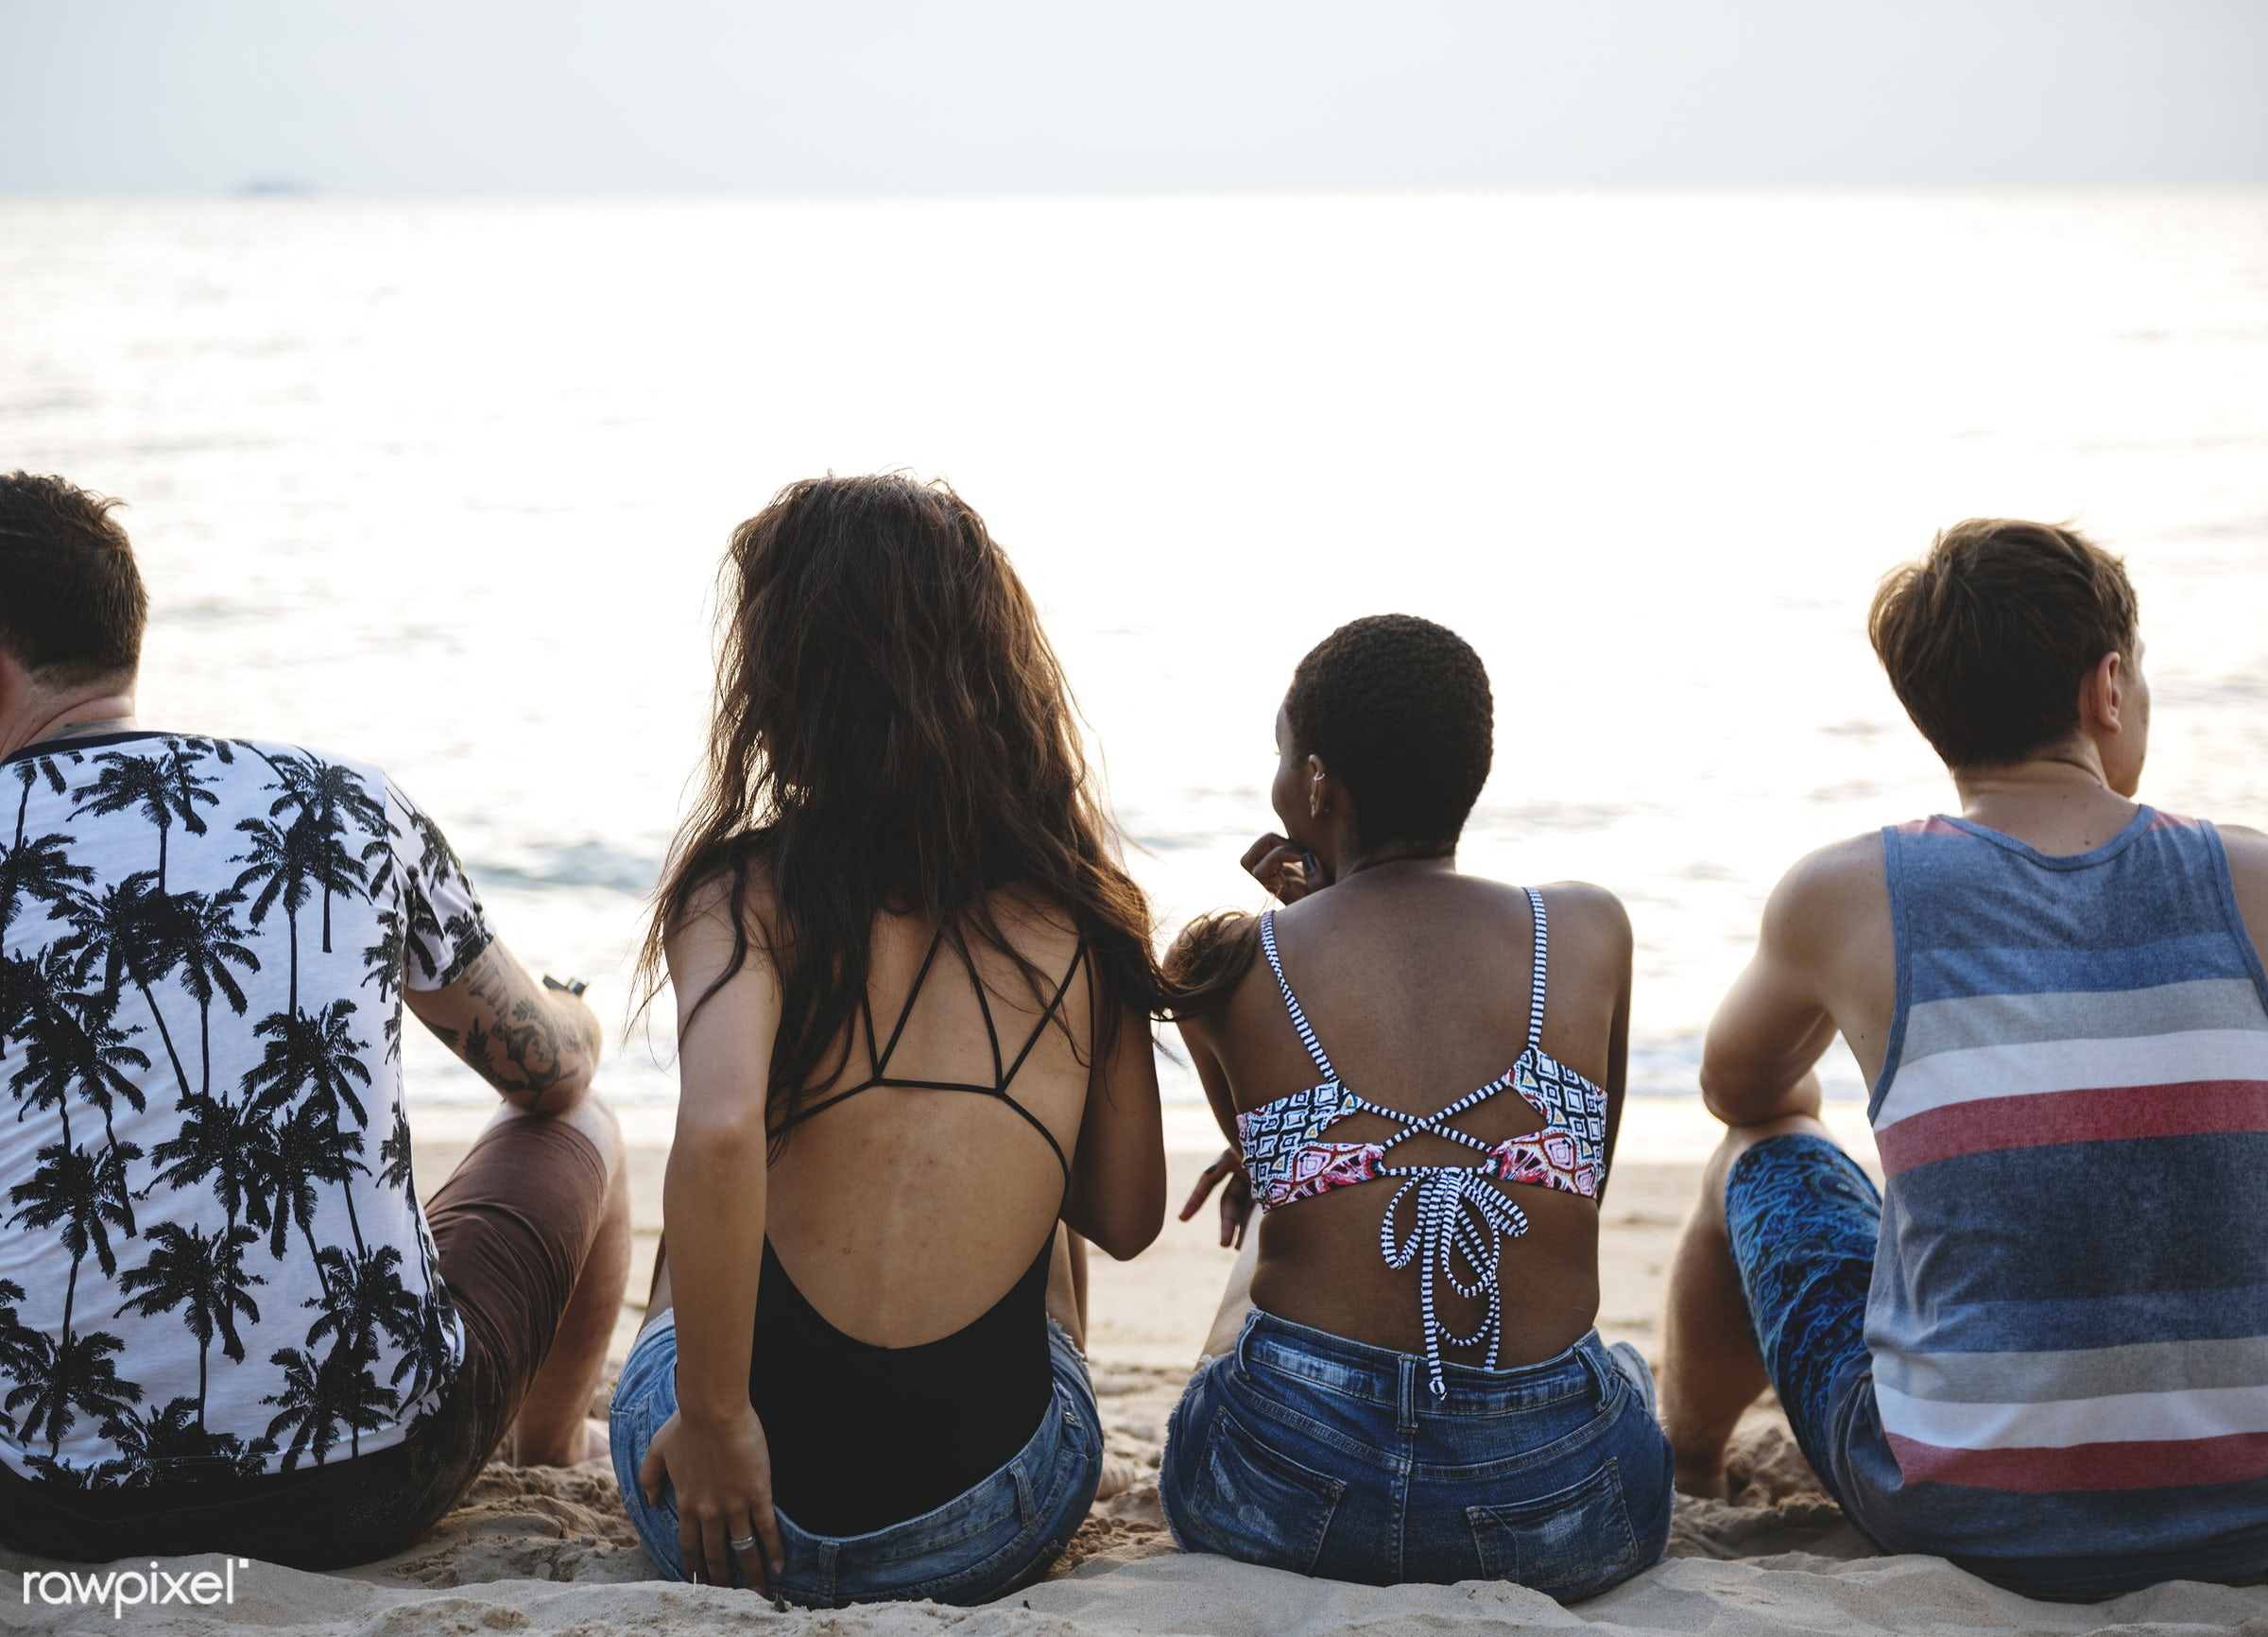 A diverse group of friends sitting at the beach together - relax, diverse, beach, recreation, people, together, coast, break...